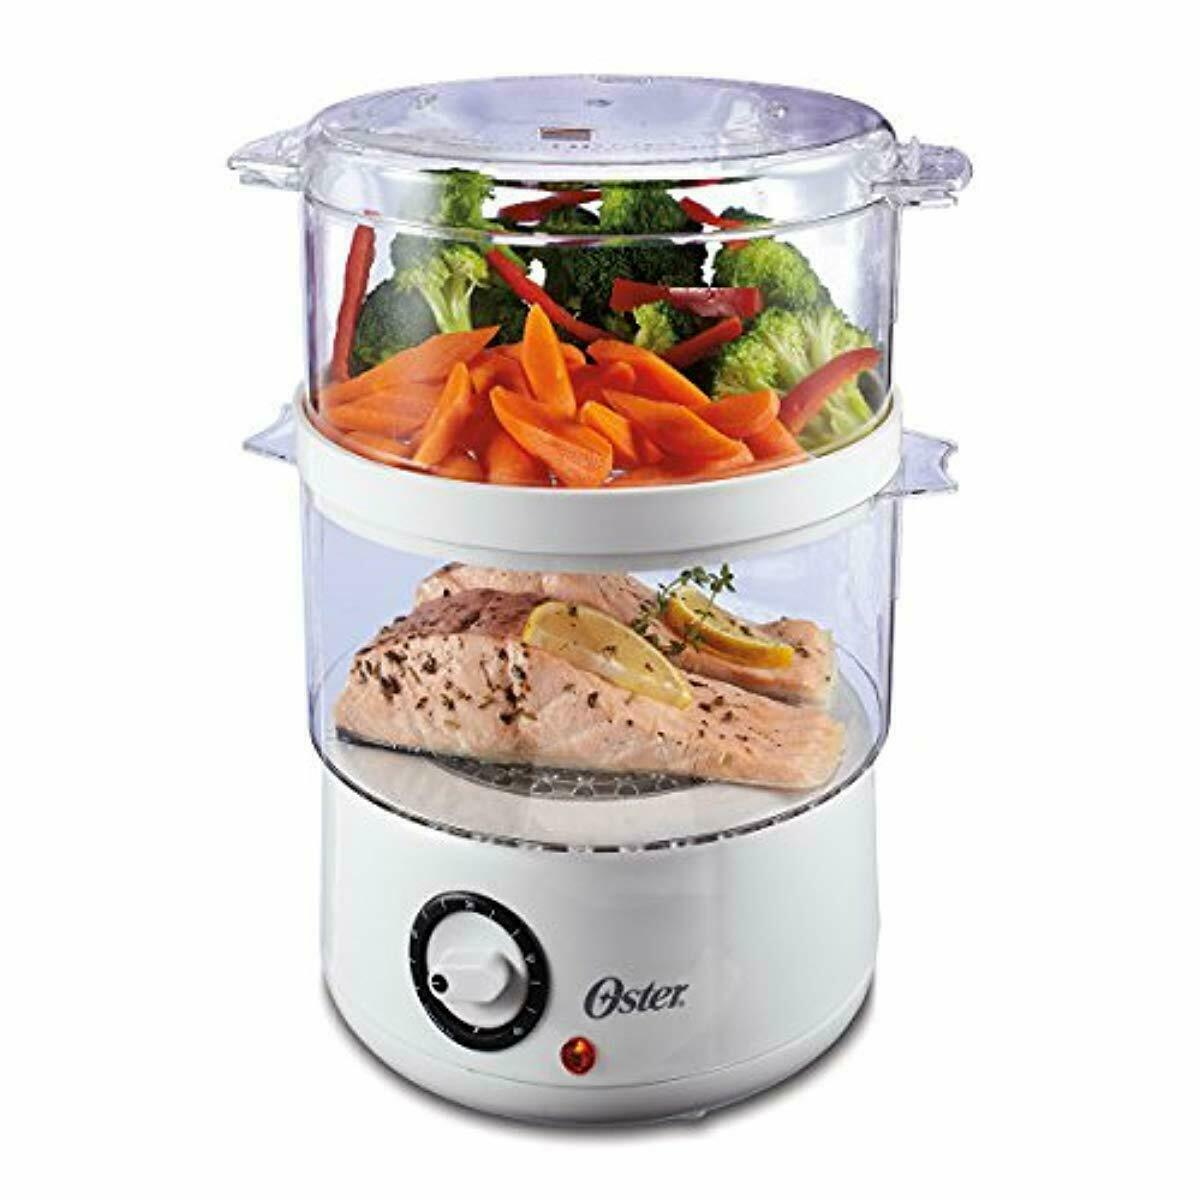 Oster Double Tiered White Food Steamer 5 Quart CKSTSTMD5-W